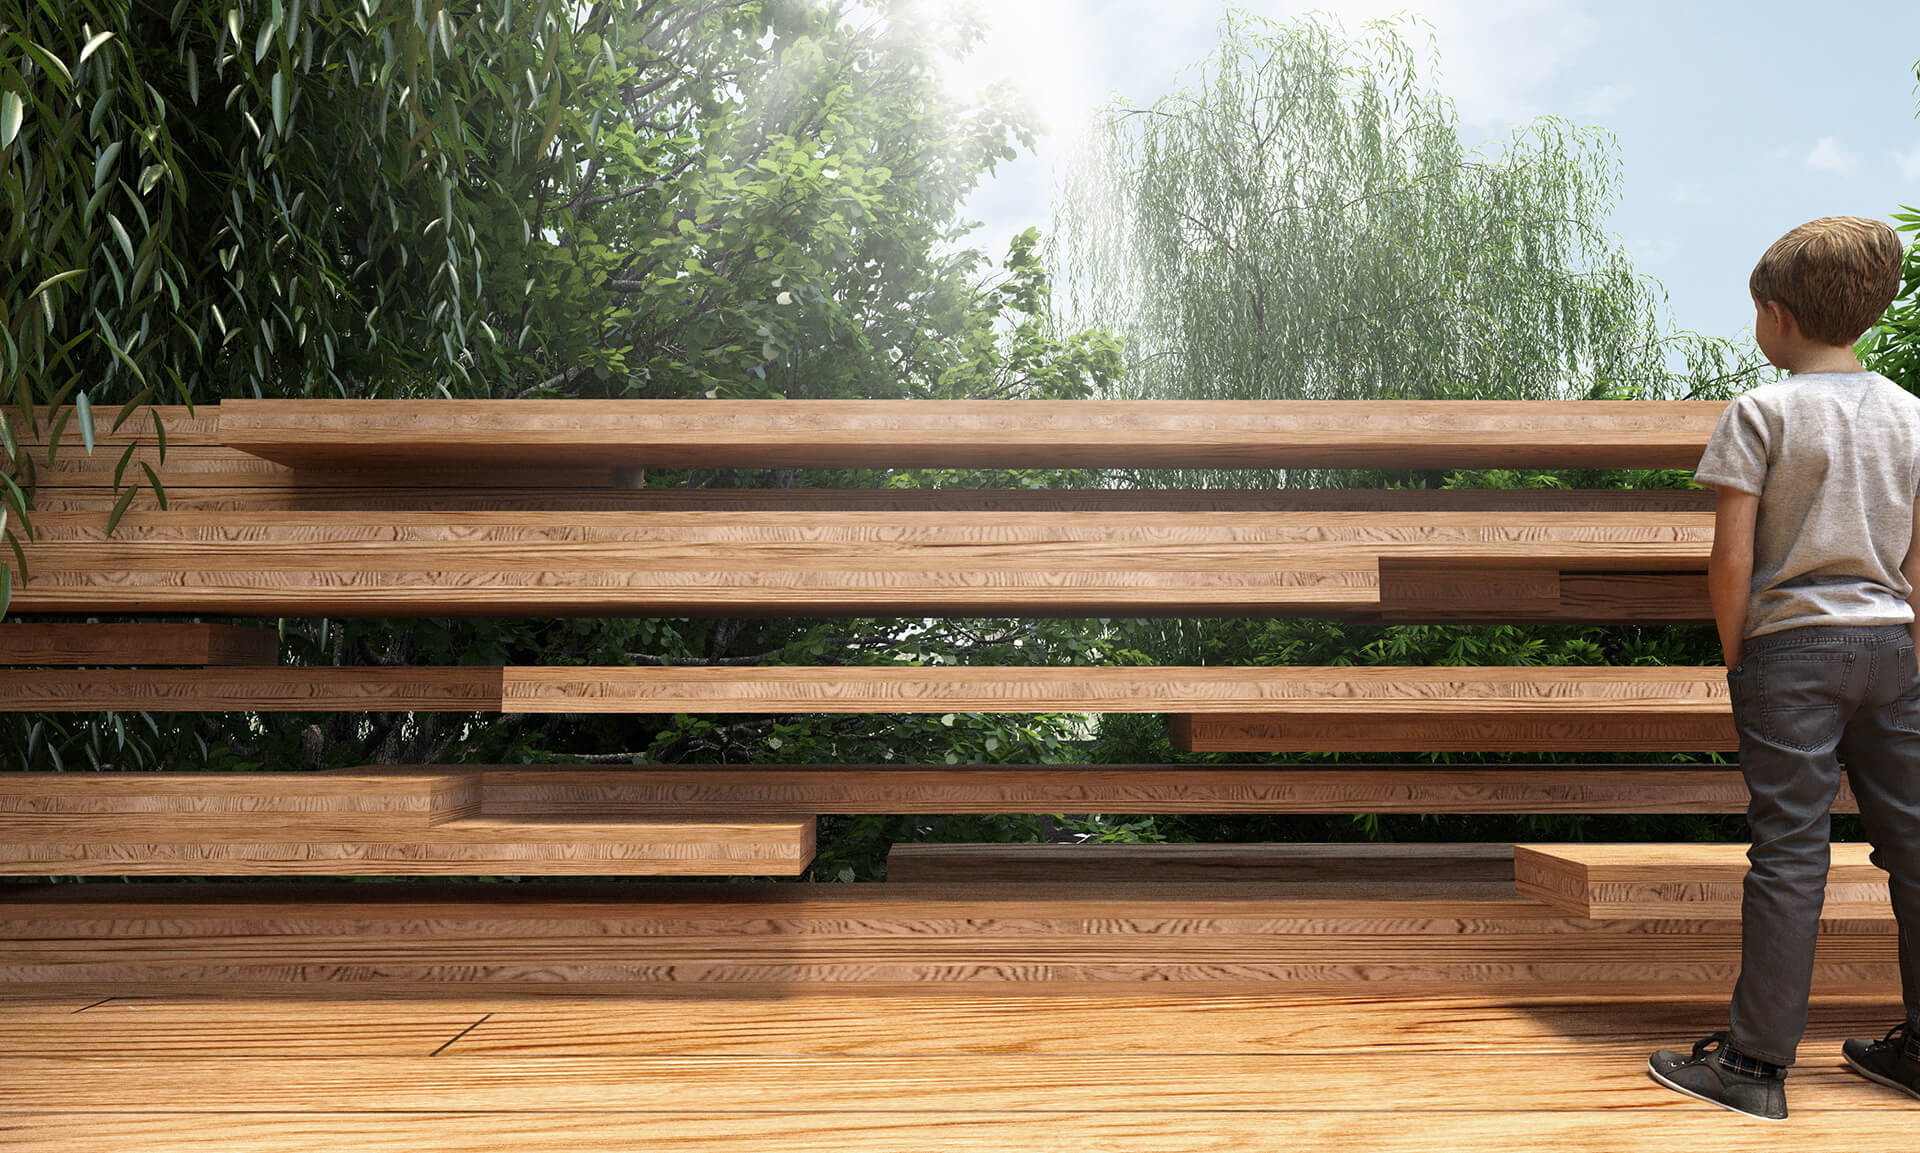 Employing treated Eucalyptus wood for the bridge suggests usage of greener building materials | Paul Cocksedge | Design Indaba 2020 | STIRworld